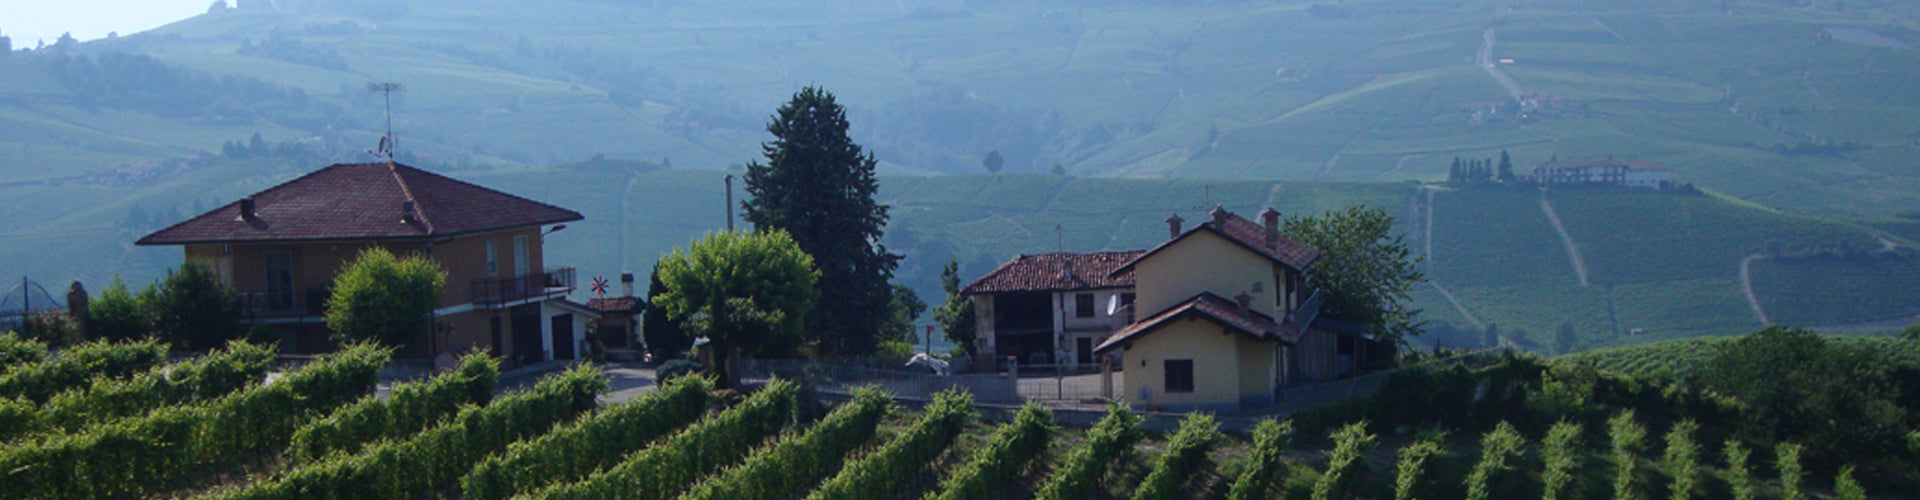 Giacosa Vineyards Neive in Piemonte, Italy